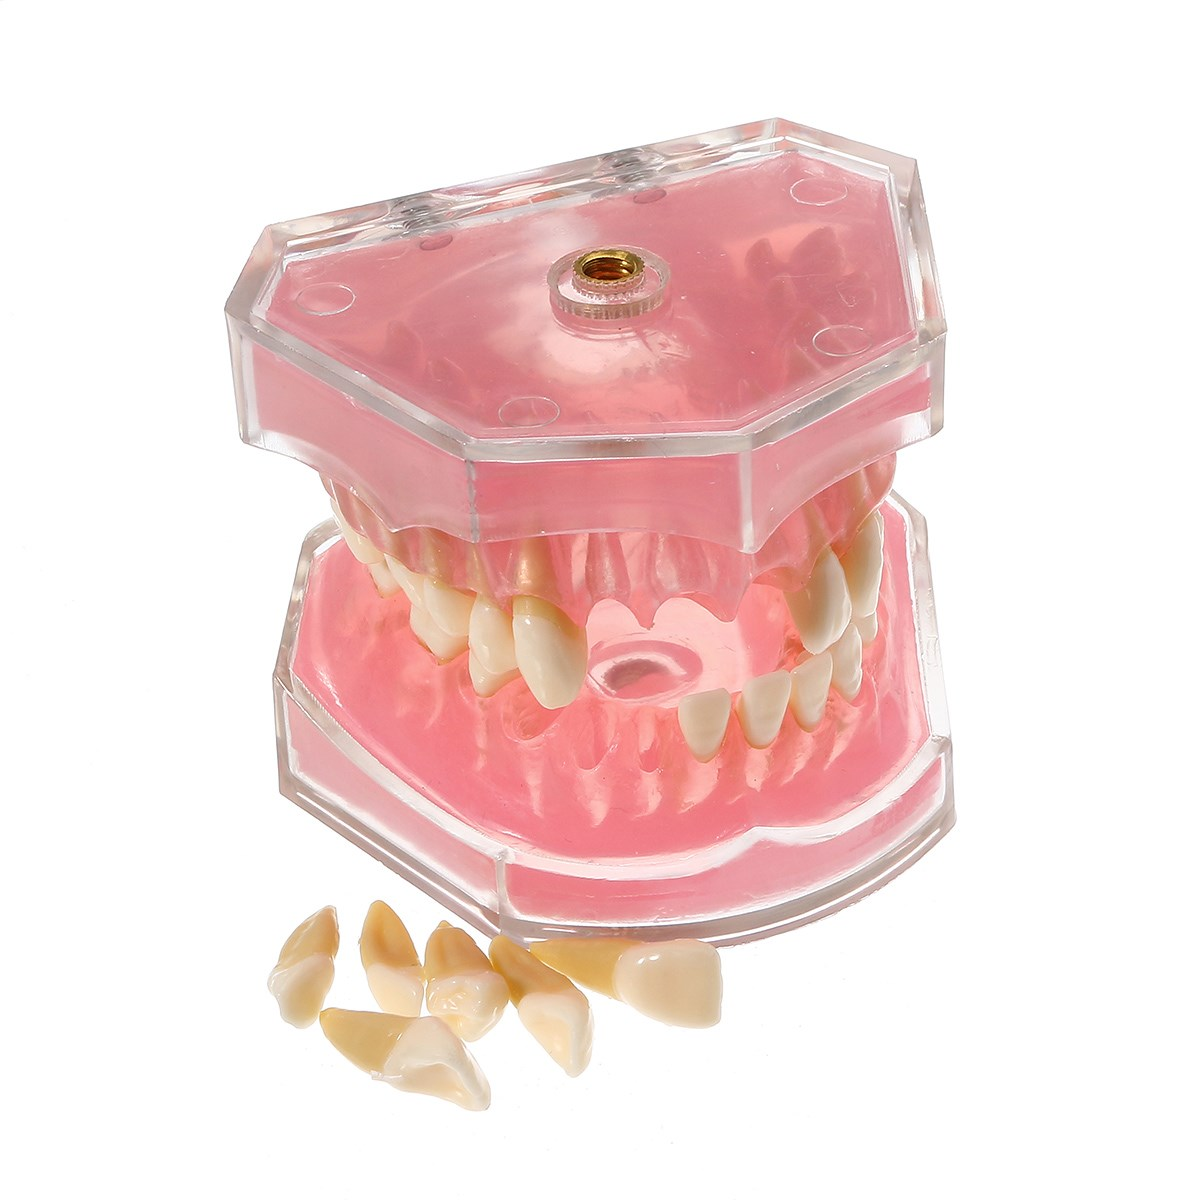 Dental Standard Model With Removable Teeth Soft Gum For Oral Care Medical Science Dental Research Stydy Teaching 2017 NEW teeth model dental periodontal disease practice dental model with removable gum can